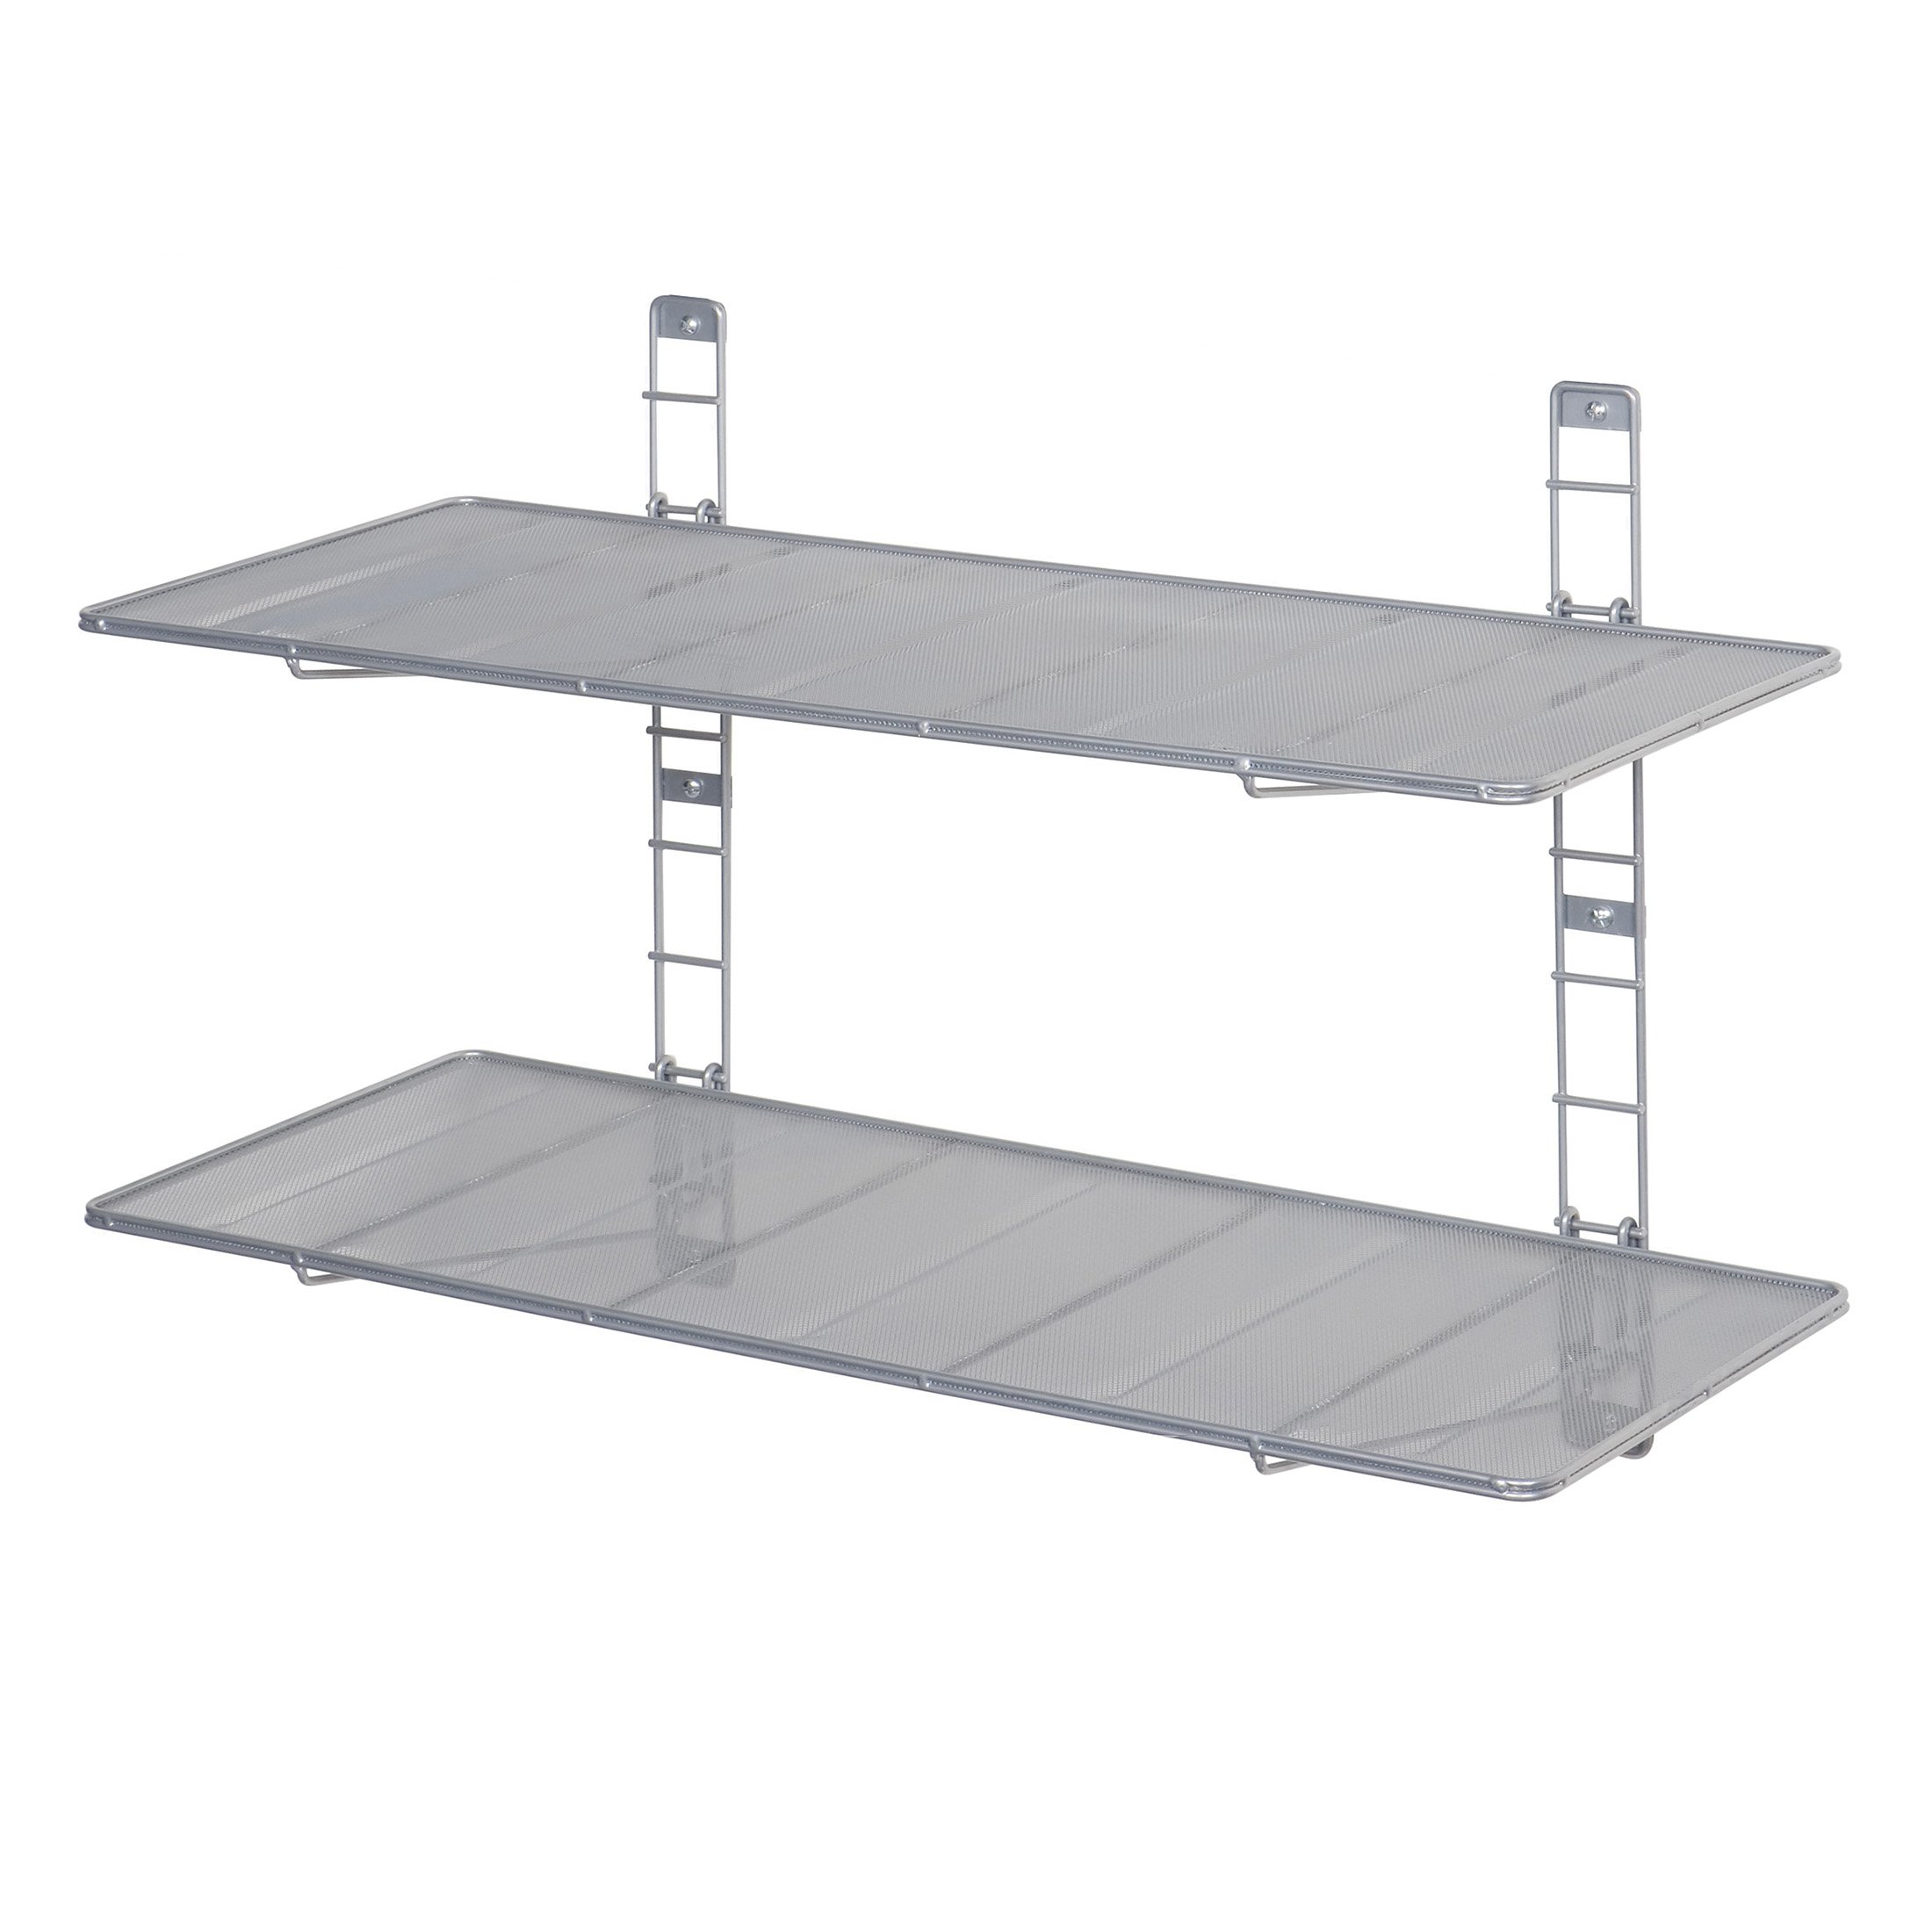 Seville Classics 2-Tier Iron Mesh Adjustable Floating Wall Shelves, 36'' x 14'', Satin Pewter